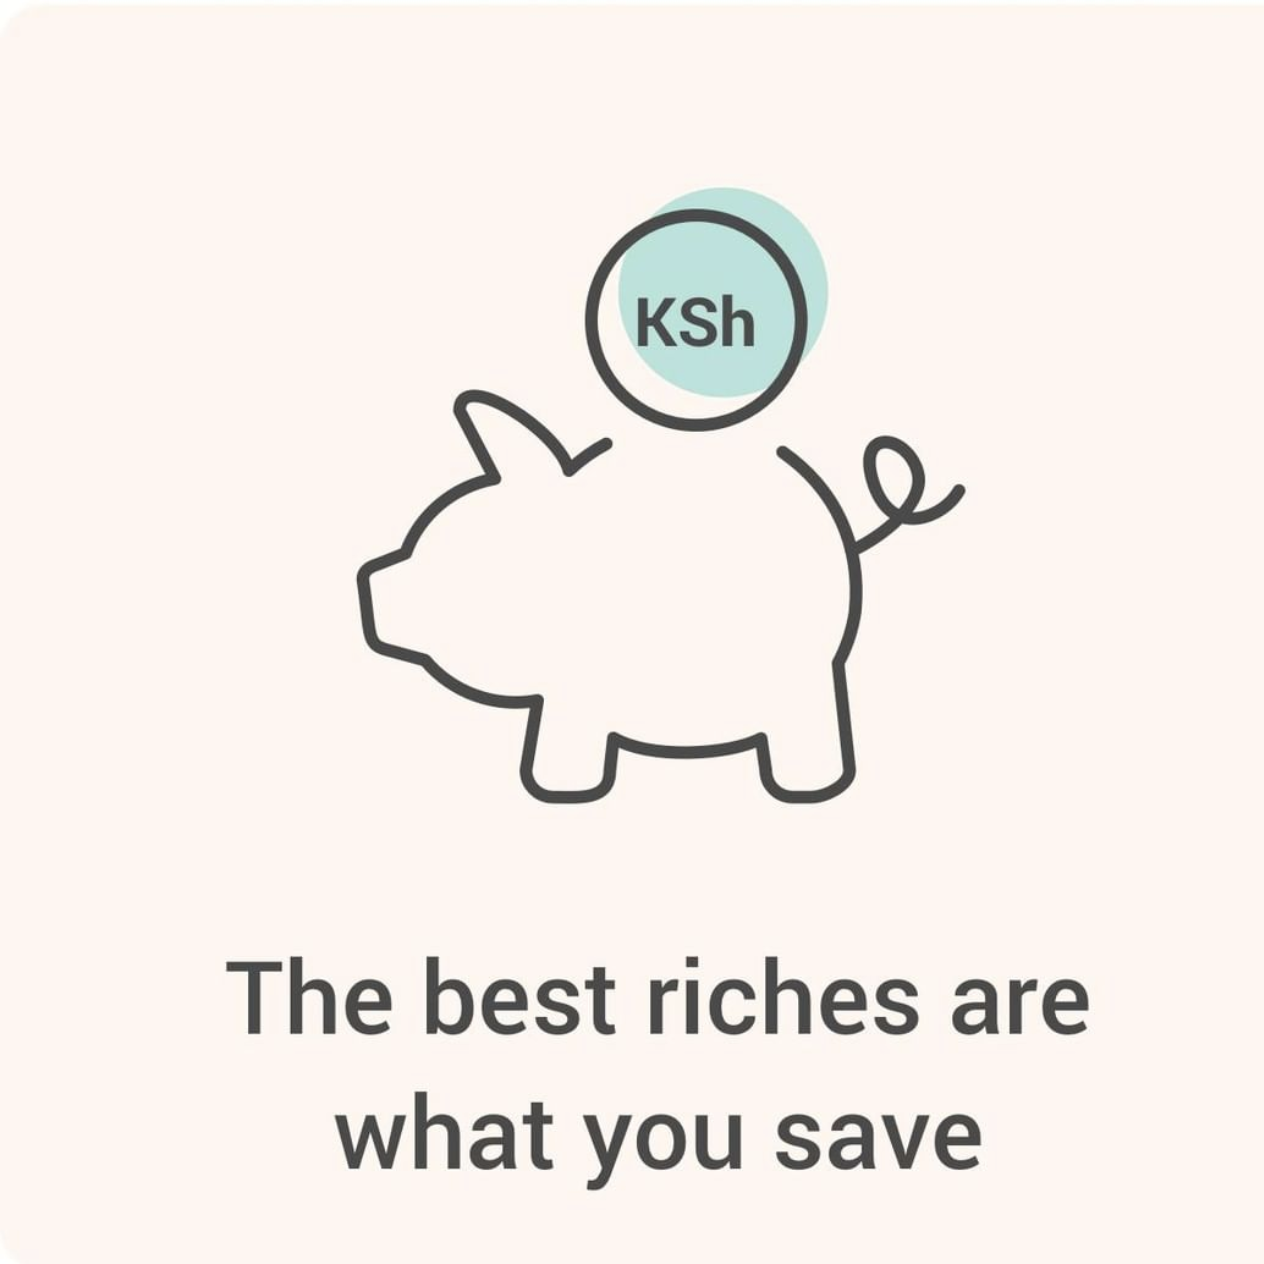 An illustration of a piggy bank